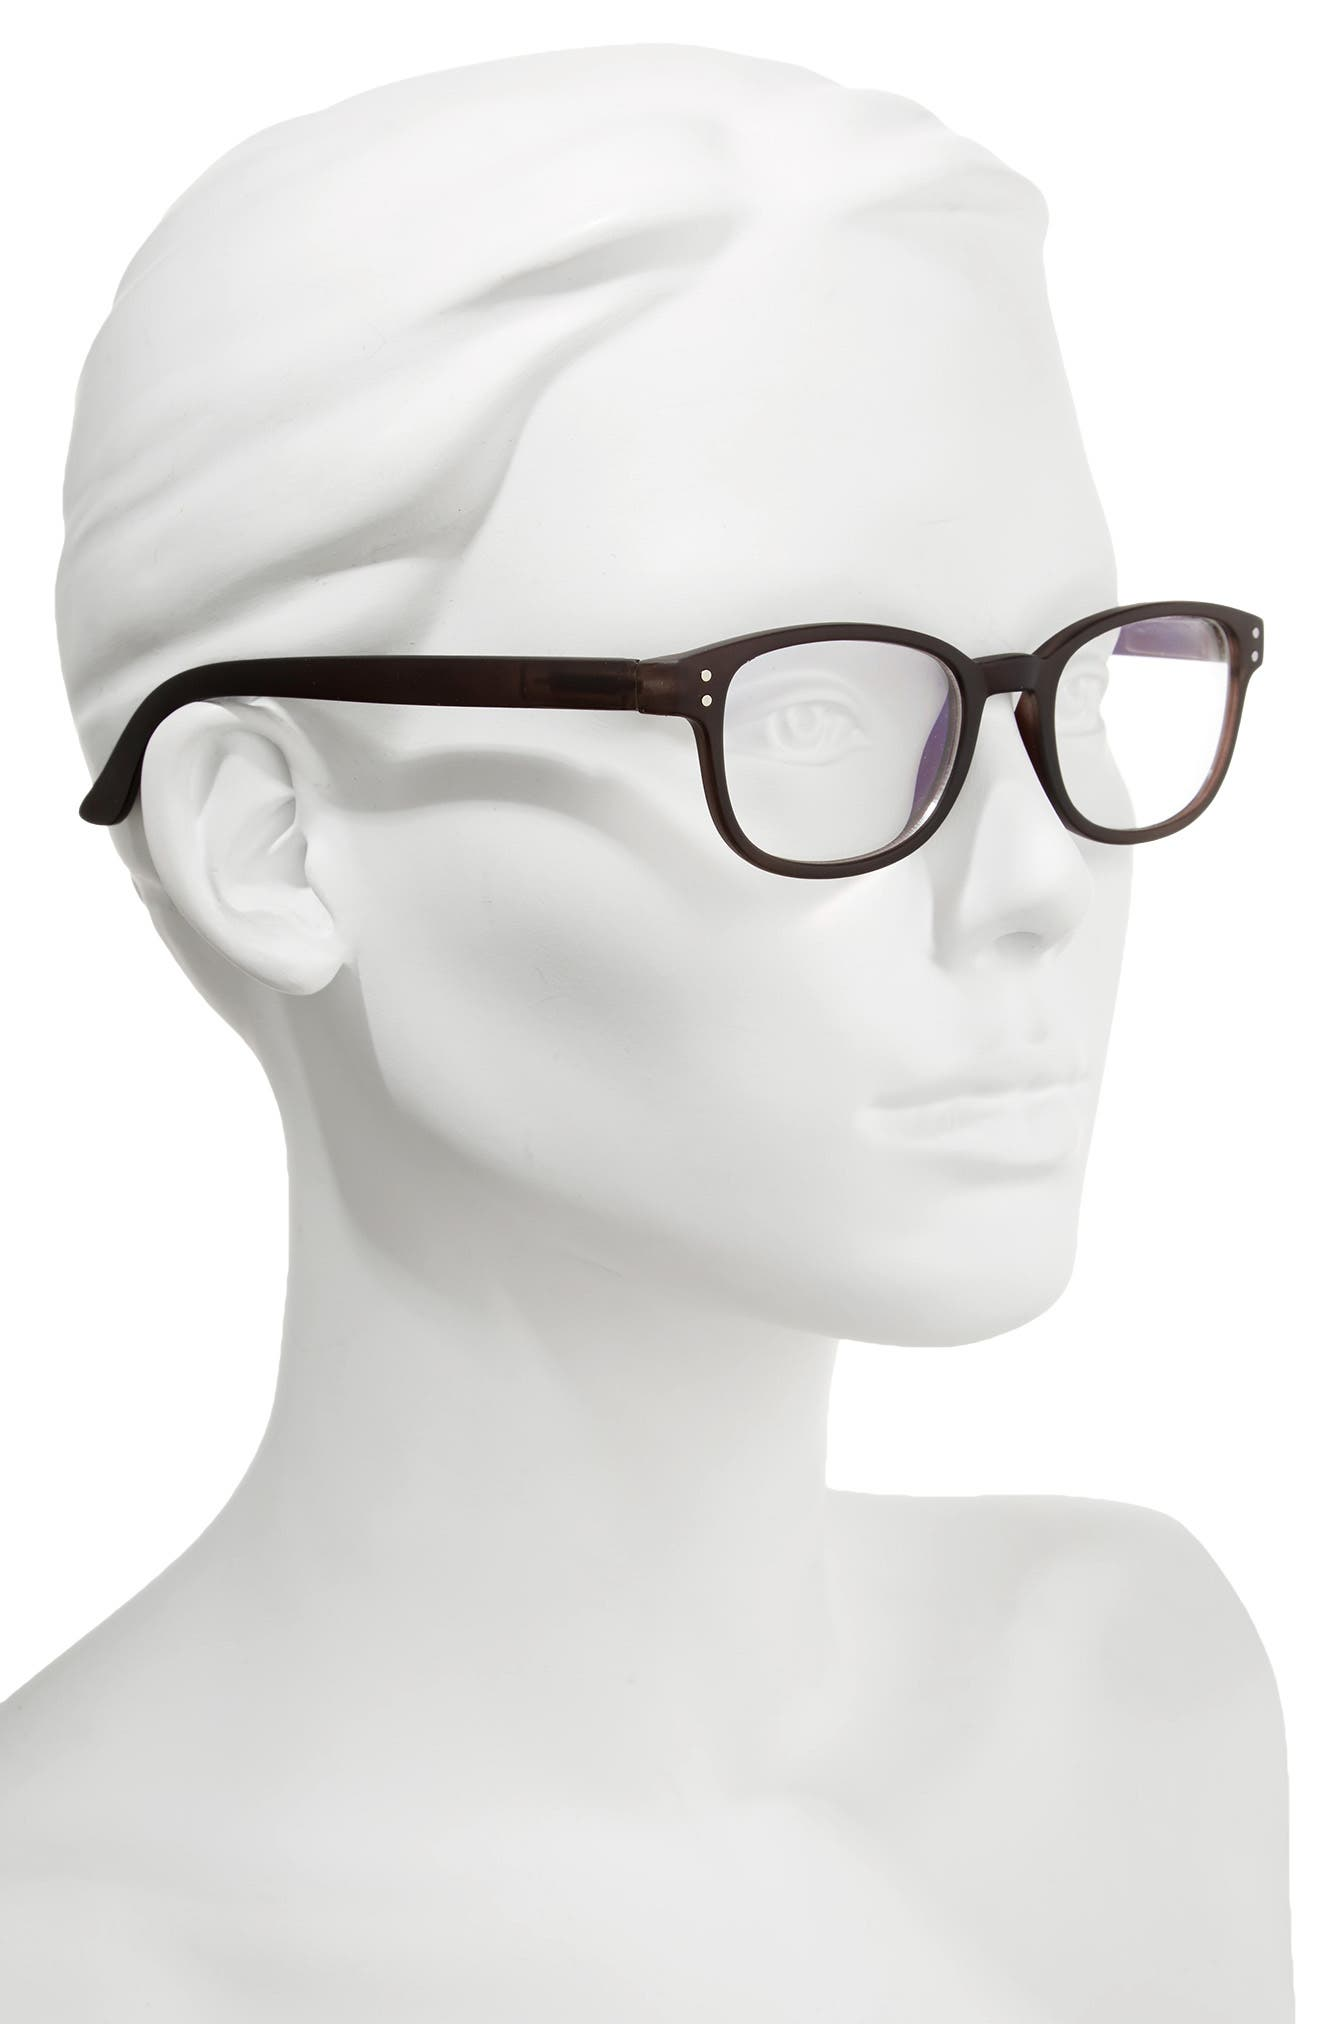 ColorSpex<sup>®</sup> 50mm Blue Light Blocking Reading Glasses,                             Alternate thumbnail 2, color,                             BLACK